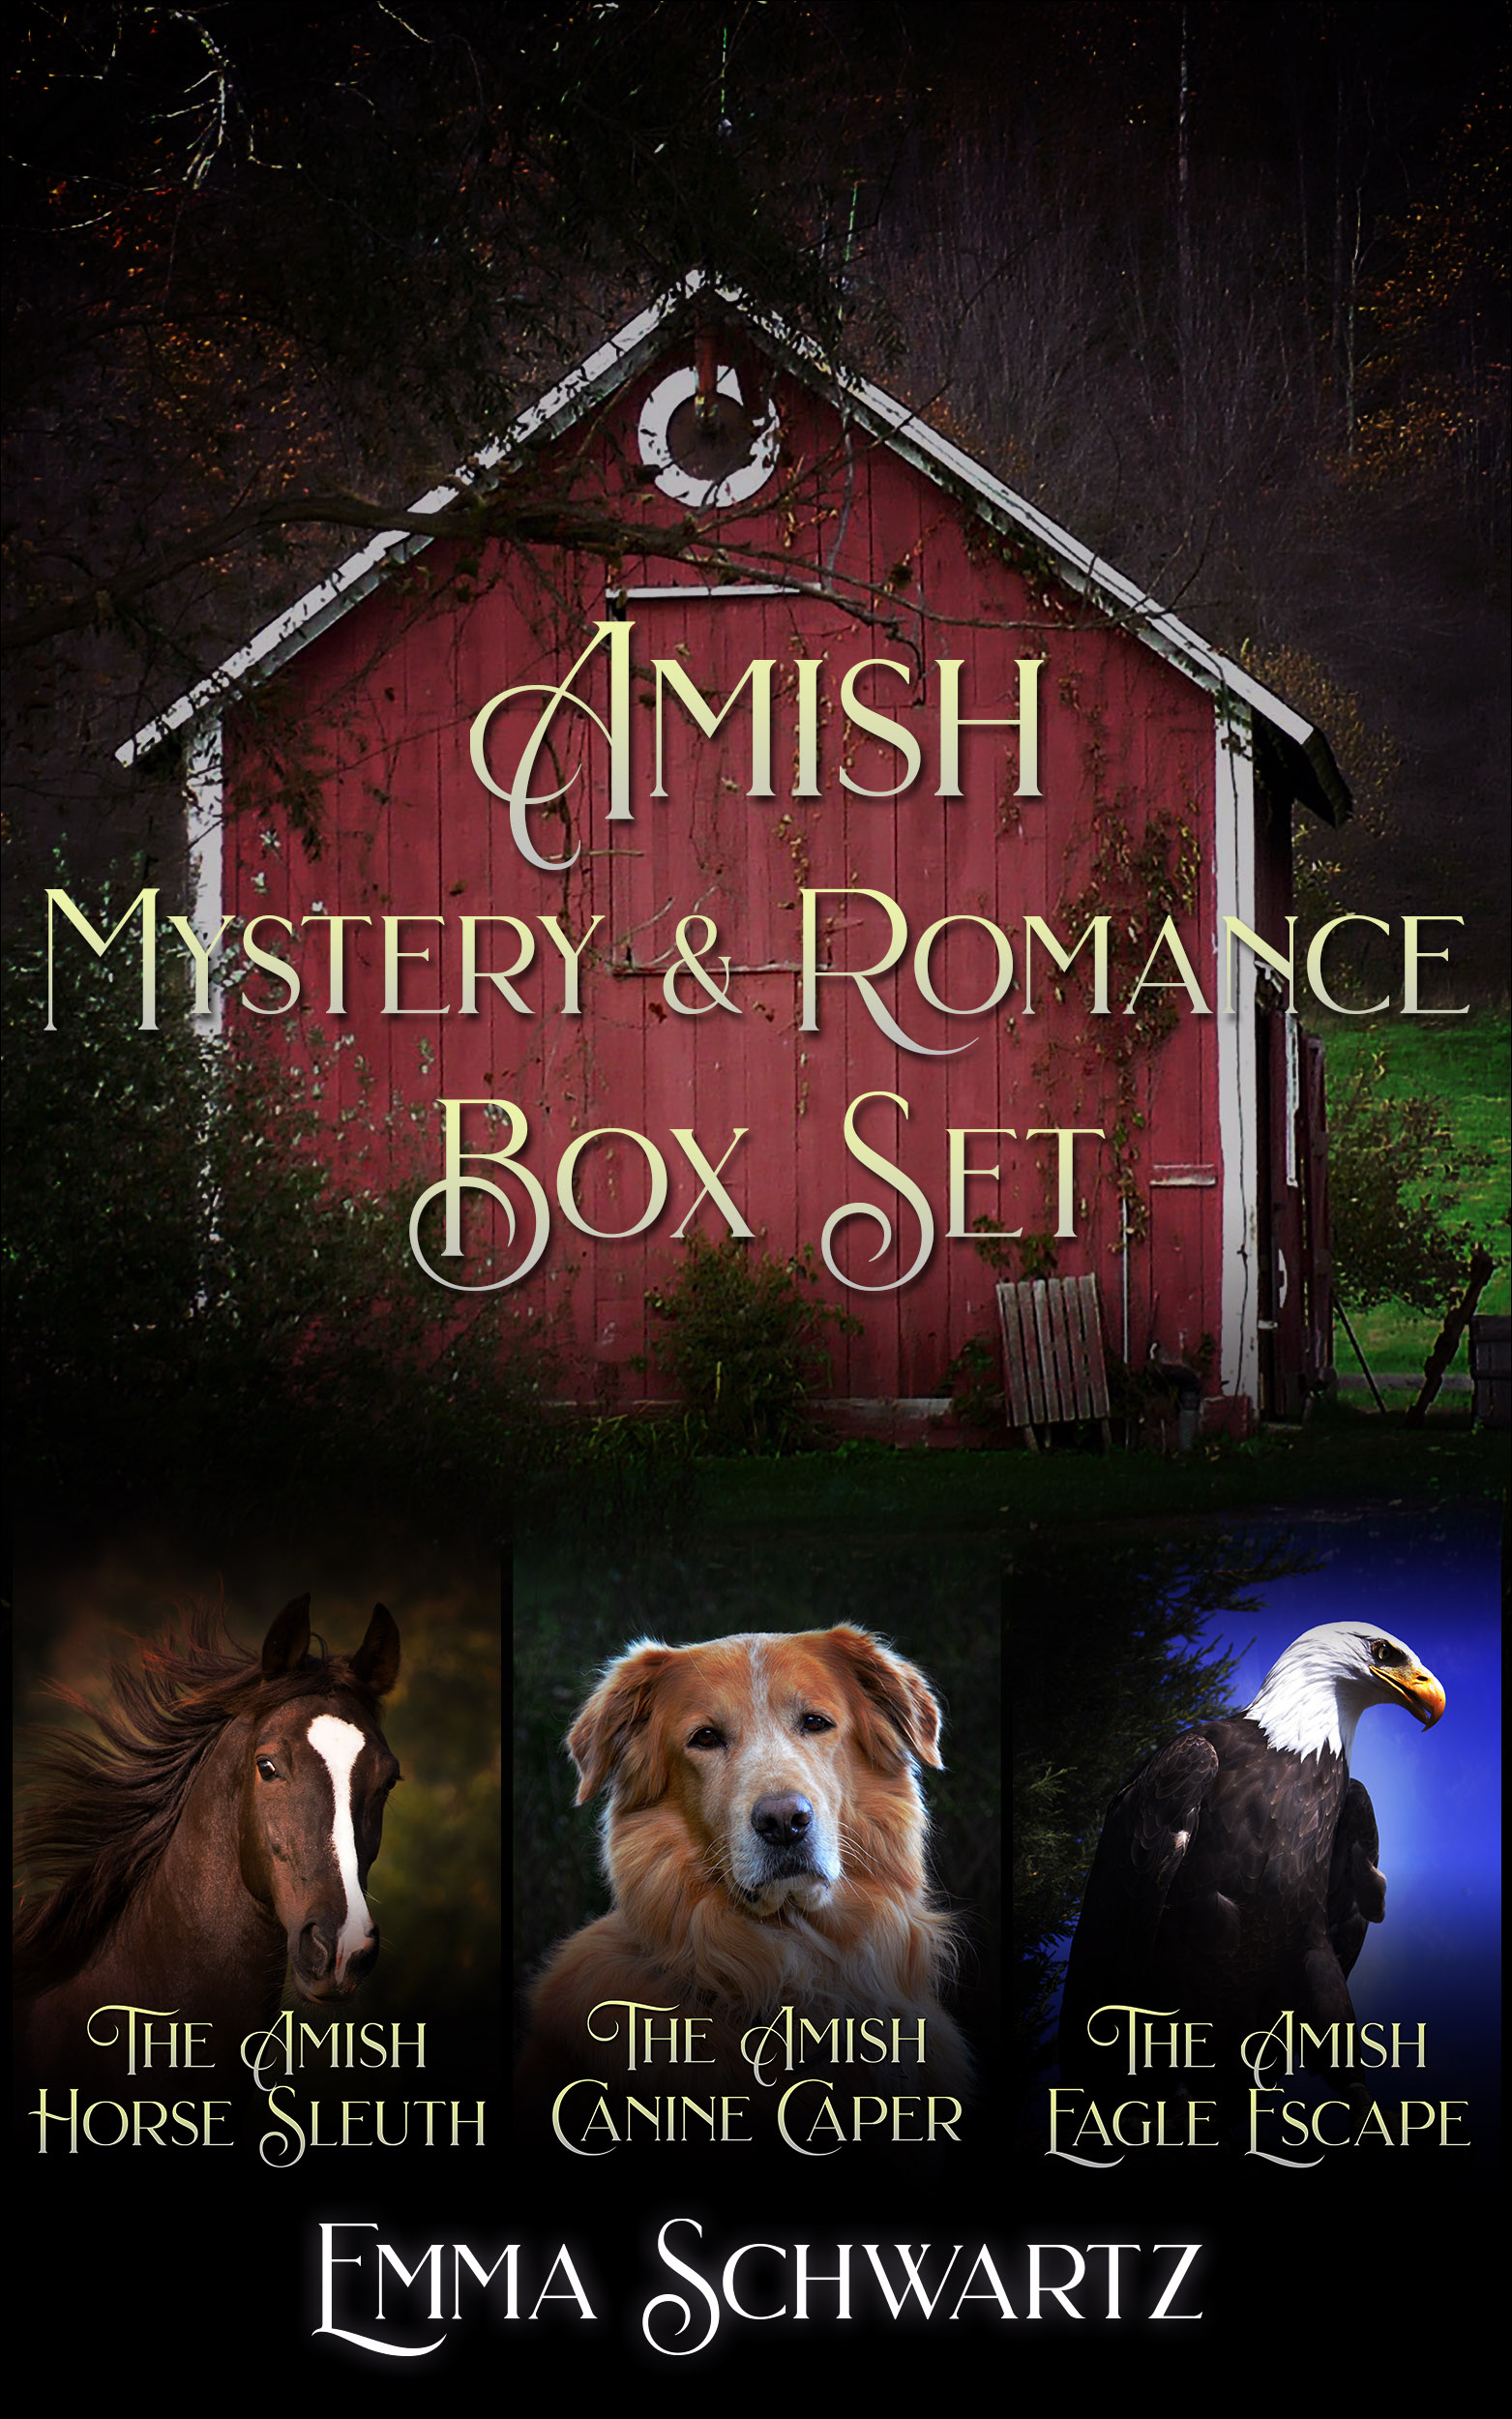 Amish Mystery & Romance Box Set